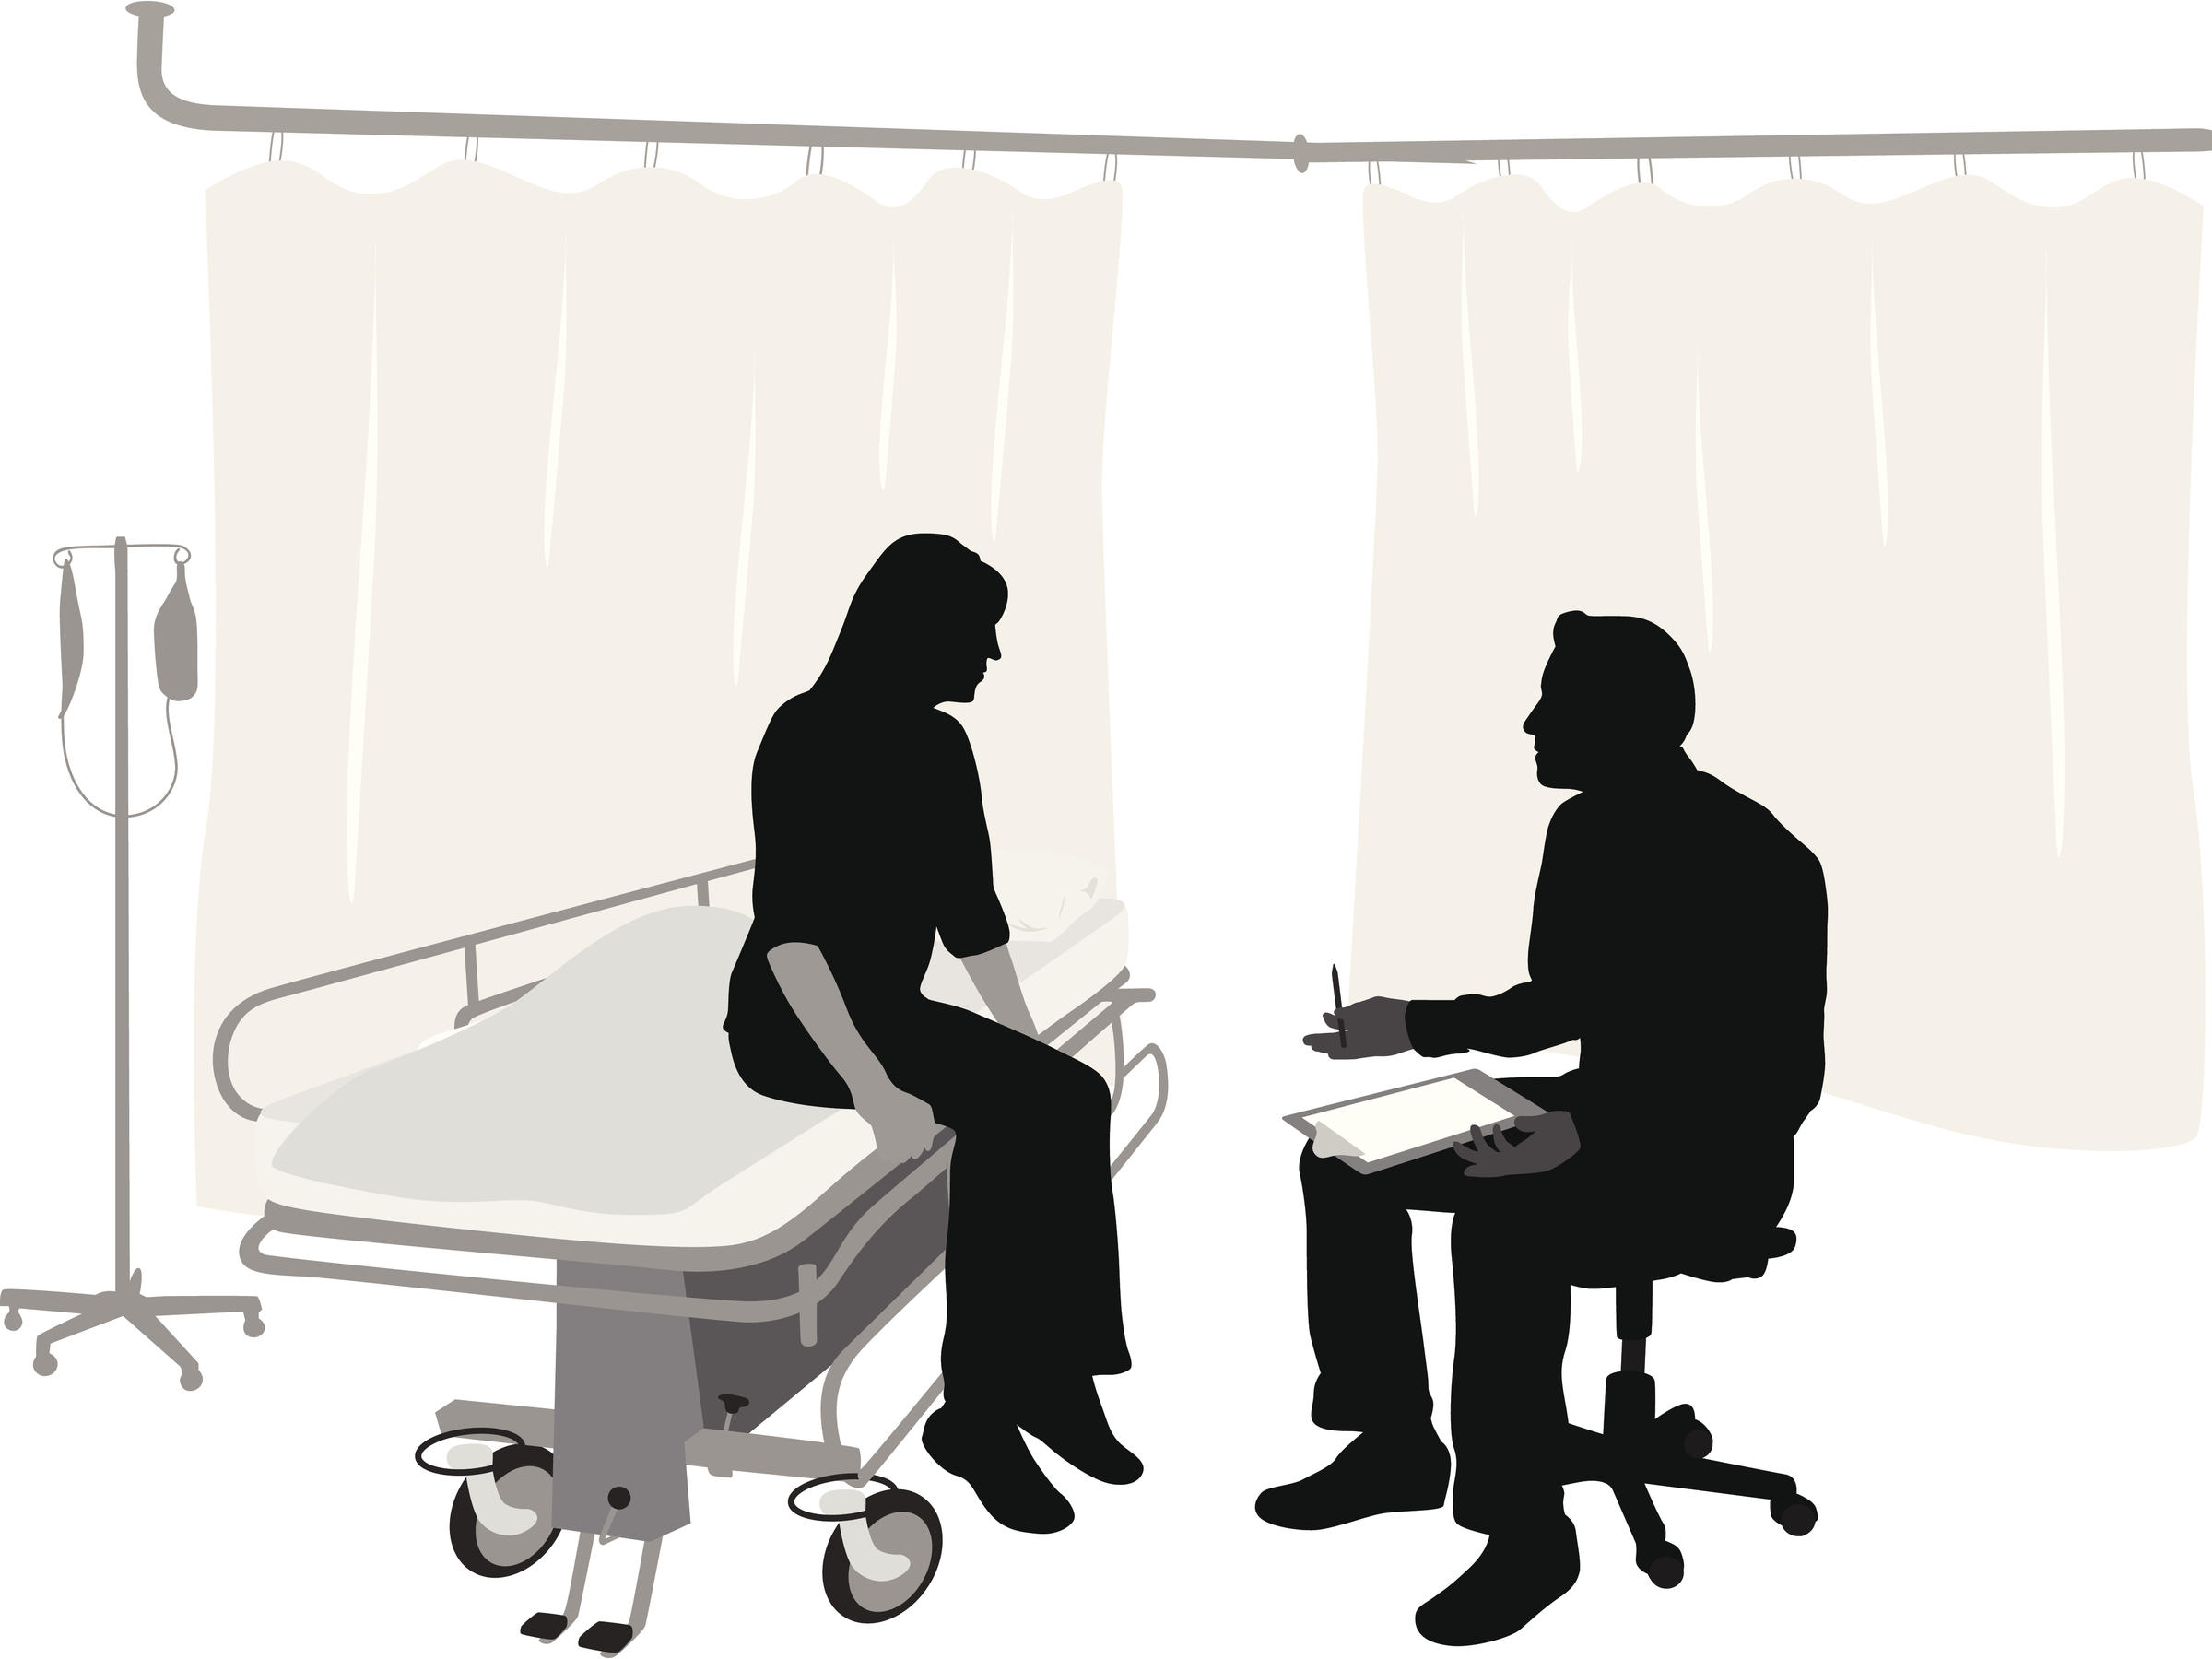 Hospitals Gear Up For New Diagnosis: Human Trafficking